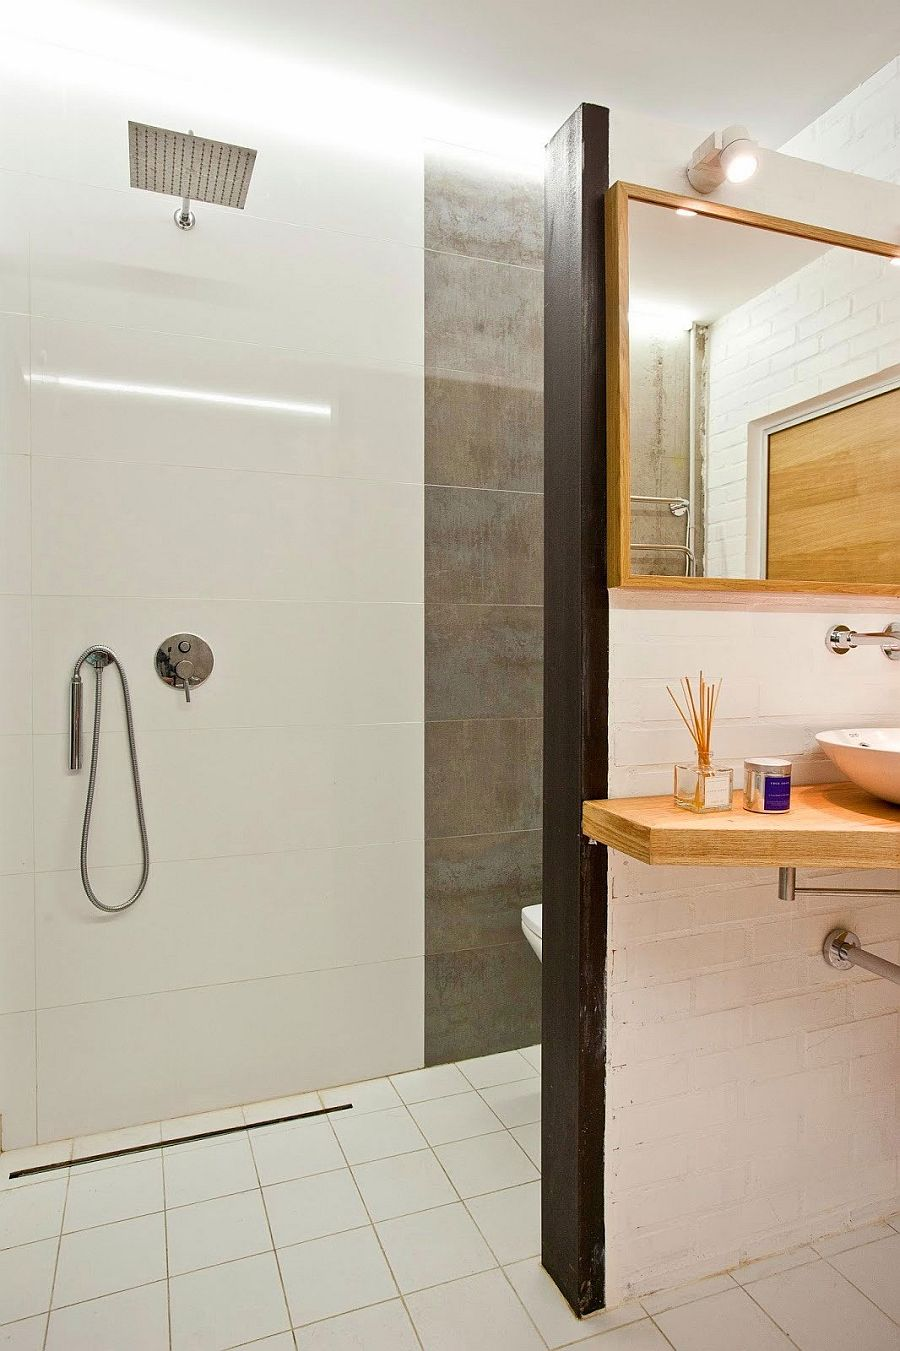 Shower area of the small bathroom in tile and concrete